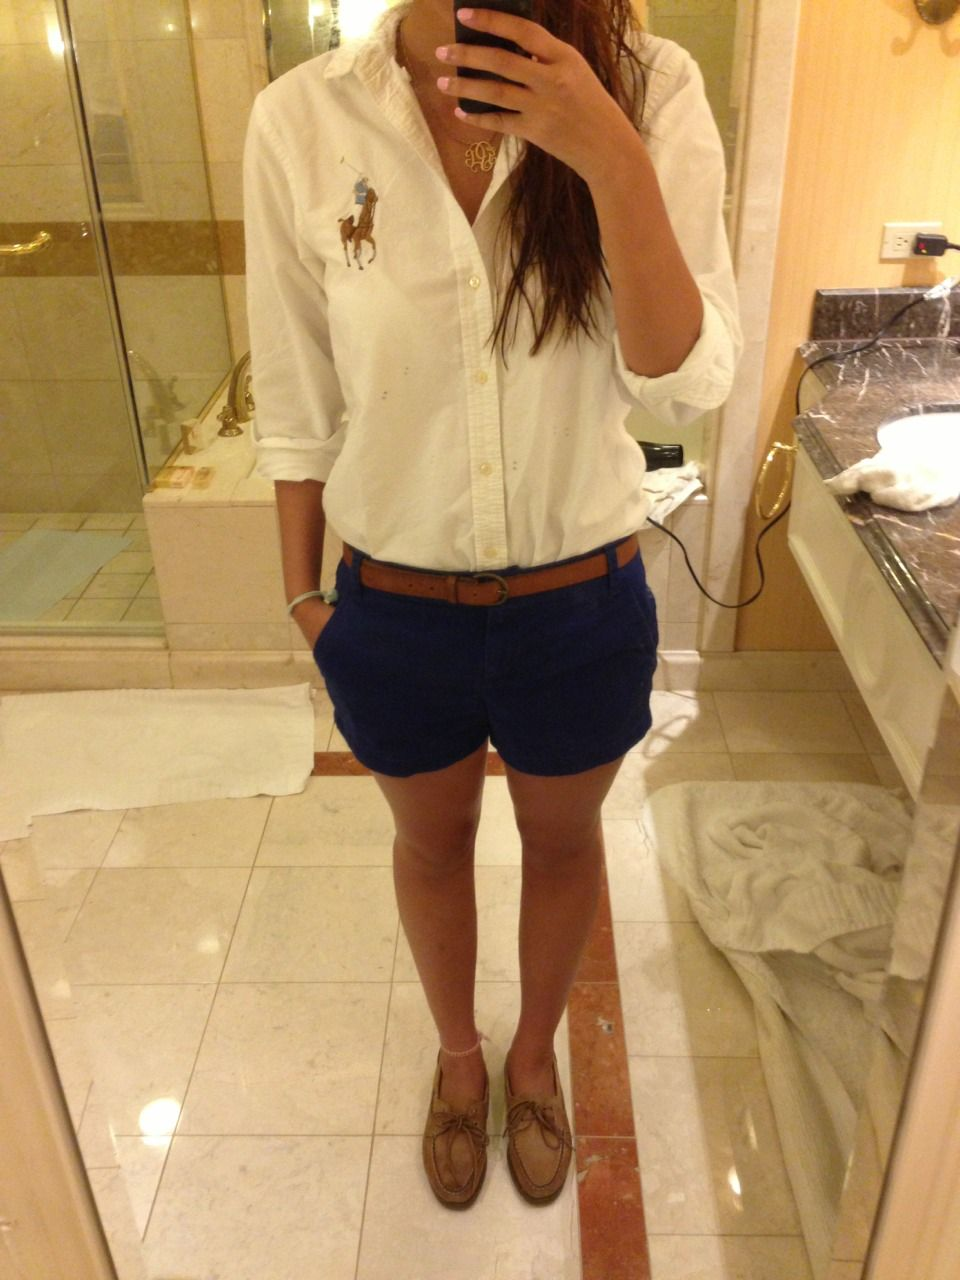 45b1b51b086 Preppy looks with sperrys. 45 Lovely Preppy Casual Summer Outfits For  School  school  oufits  summer  preppy  spring